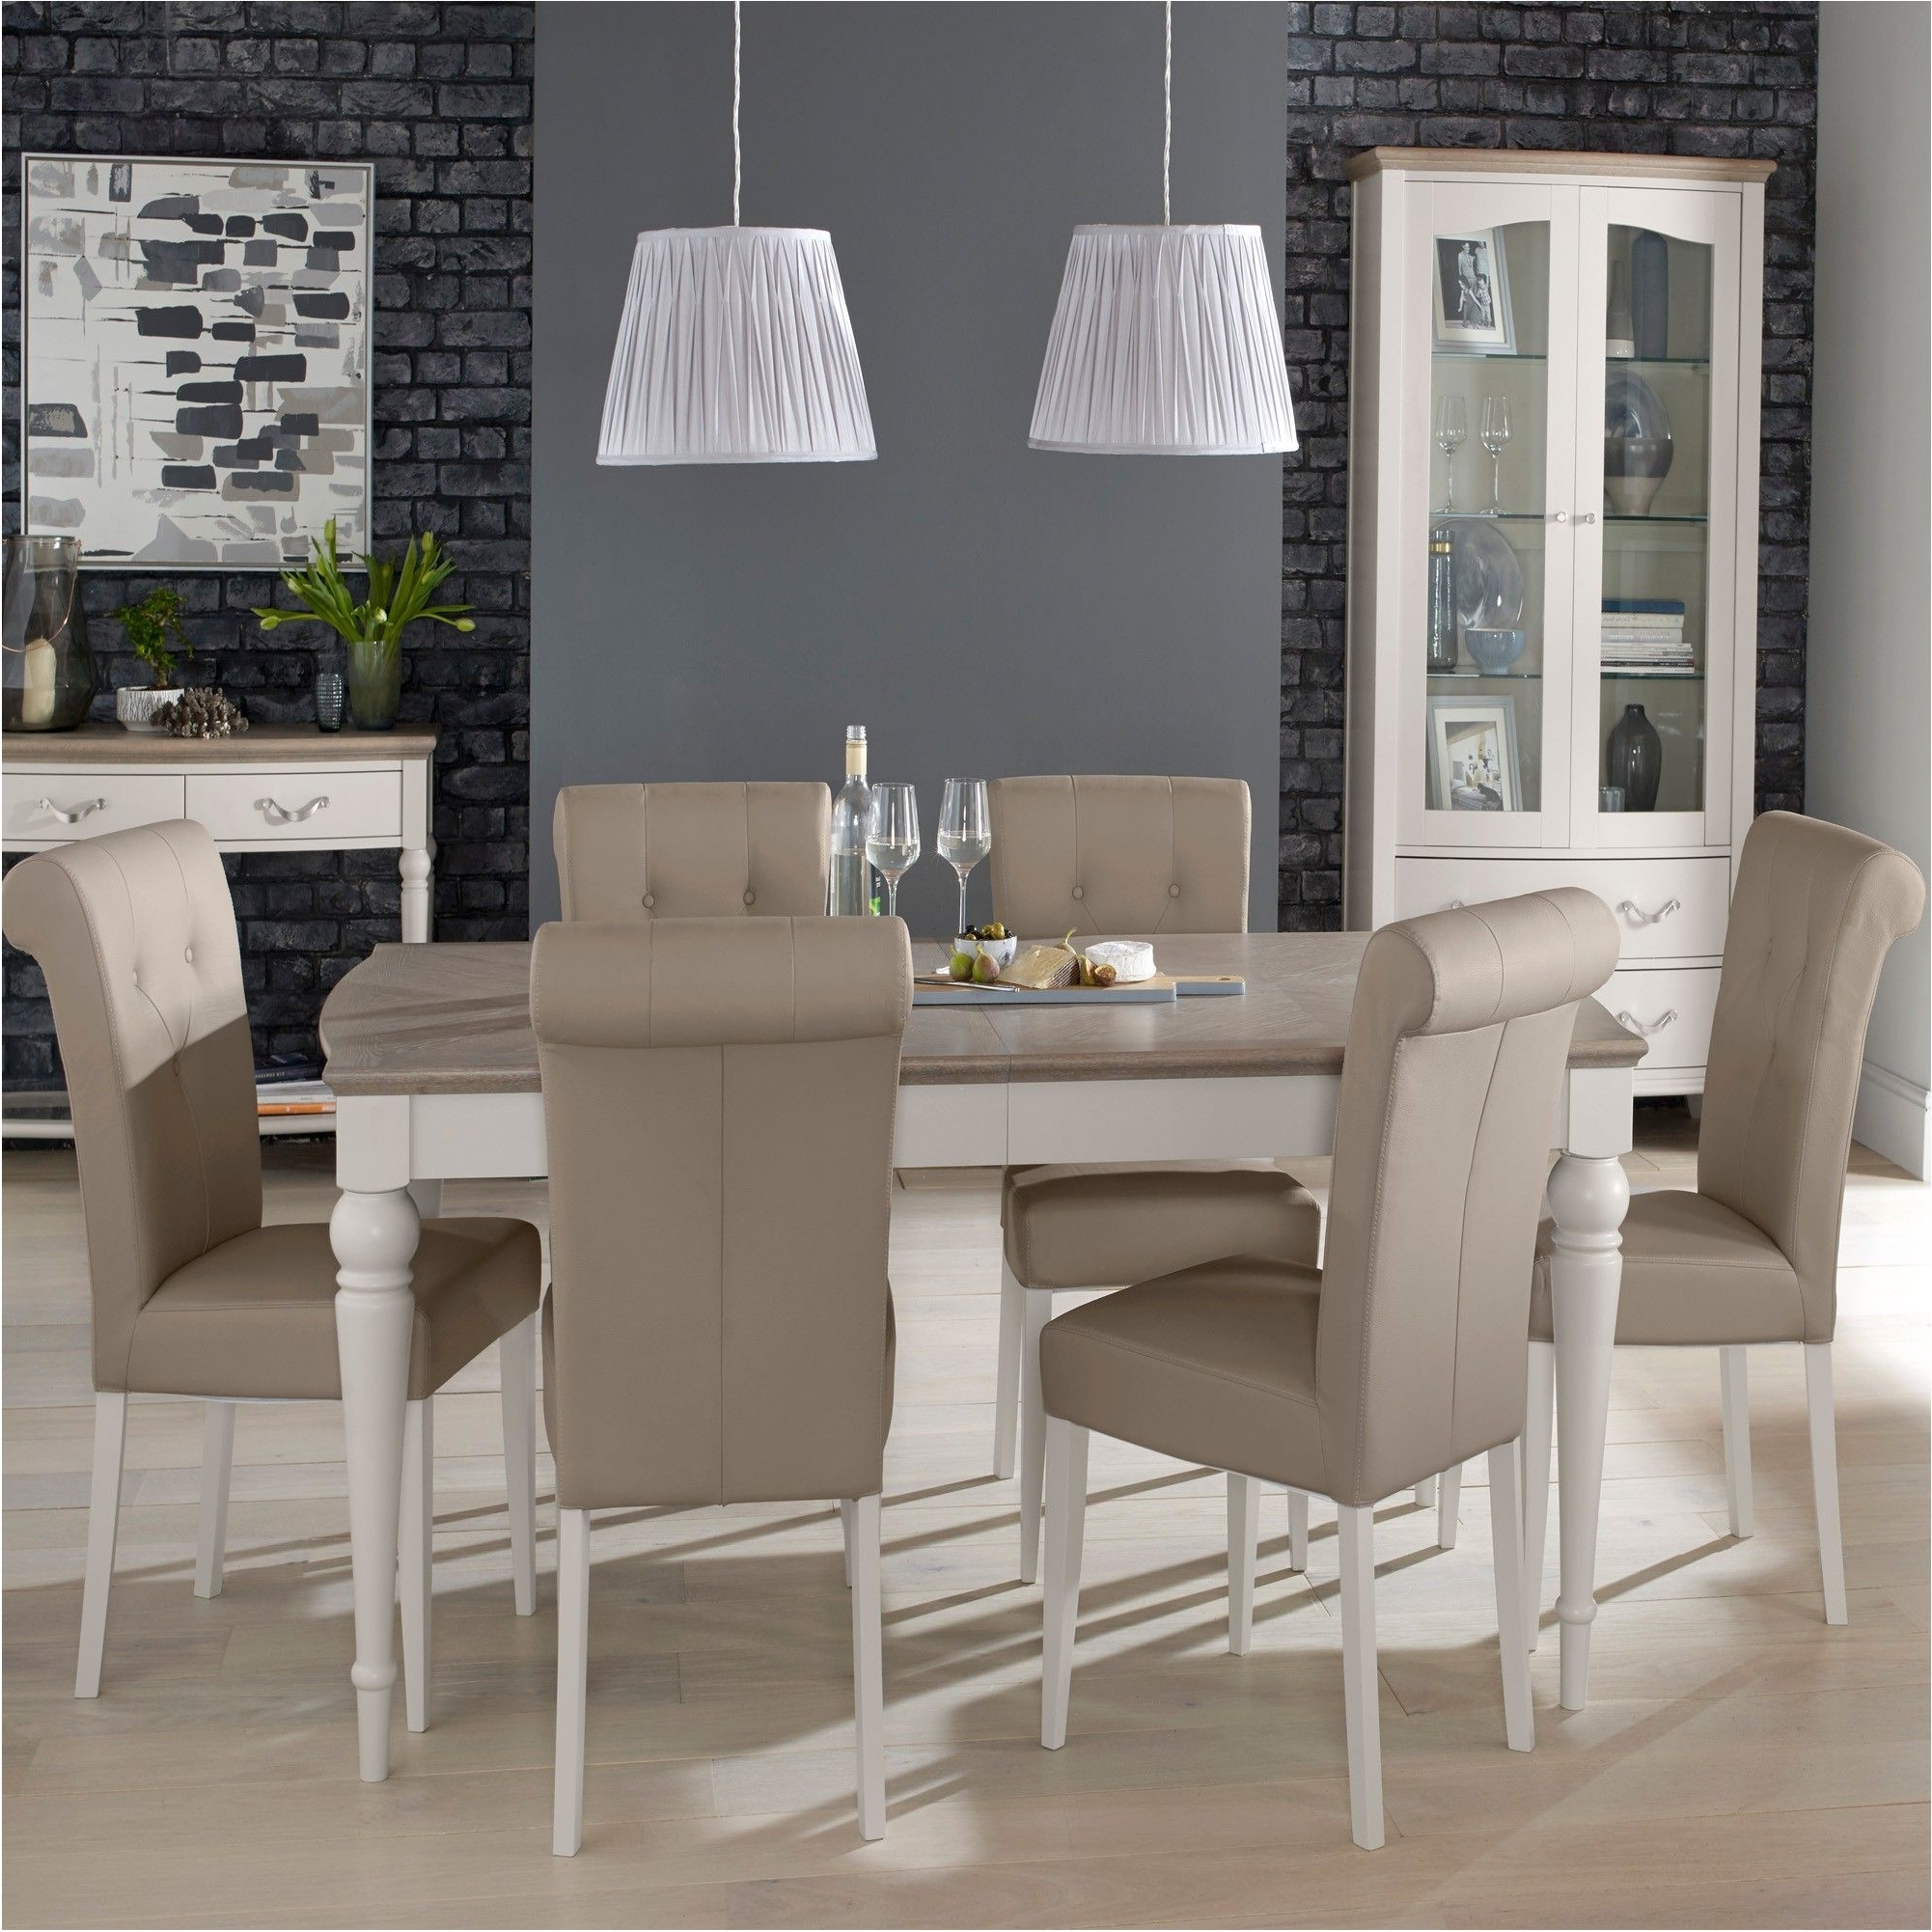 Preferred 6 Chairs And Dining Tables With Regard To Magnificent Collection Geneva Dining Table And 6 Chairs Dining Sets (View 21 of 25)